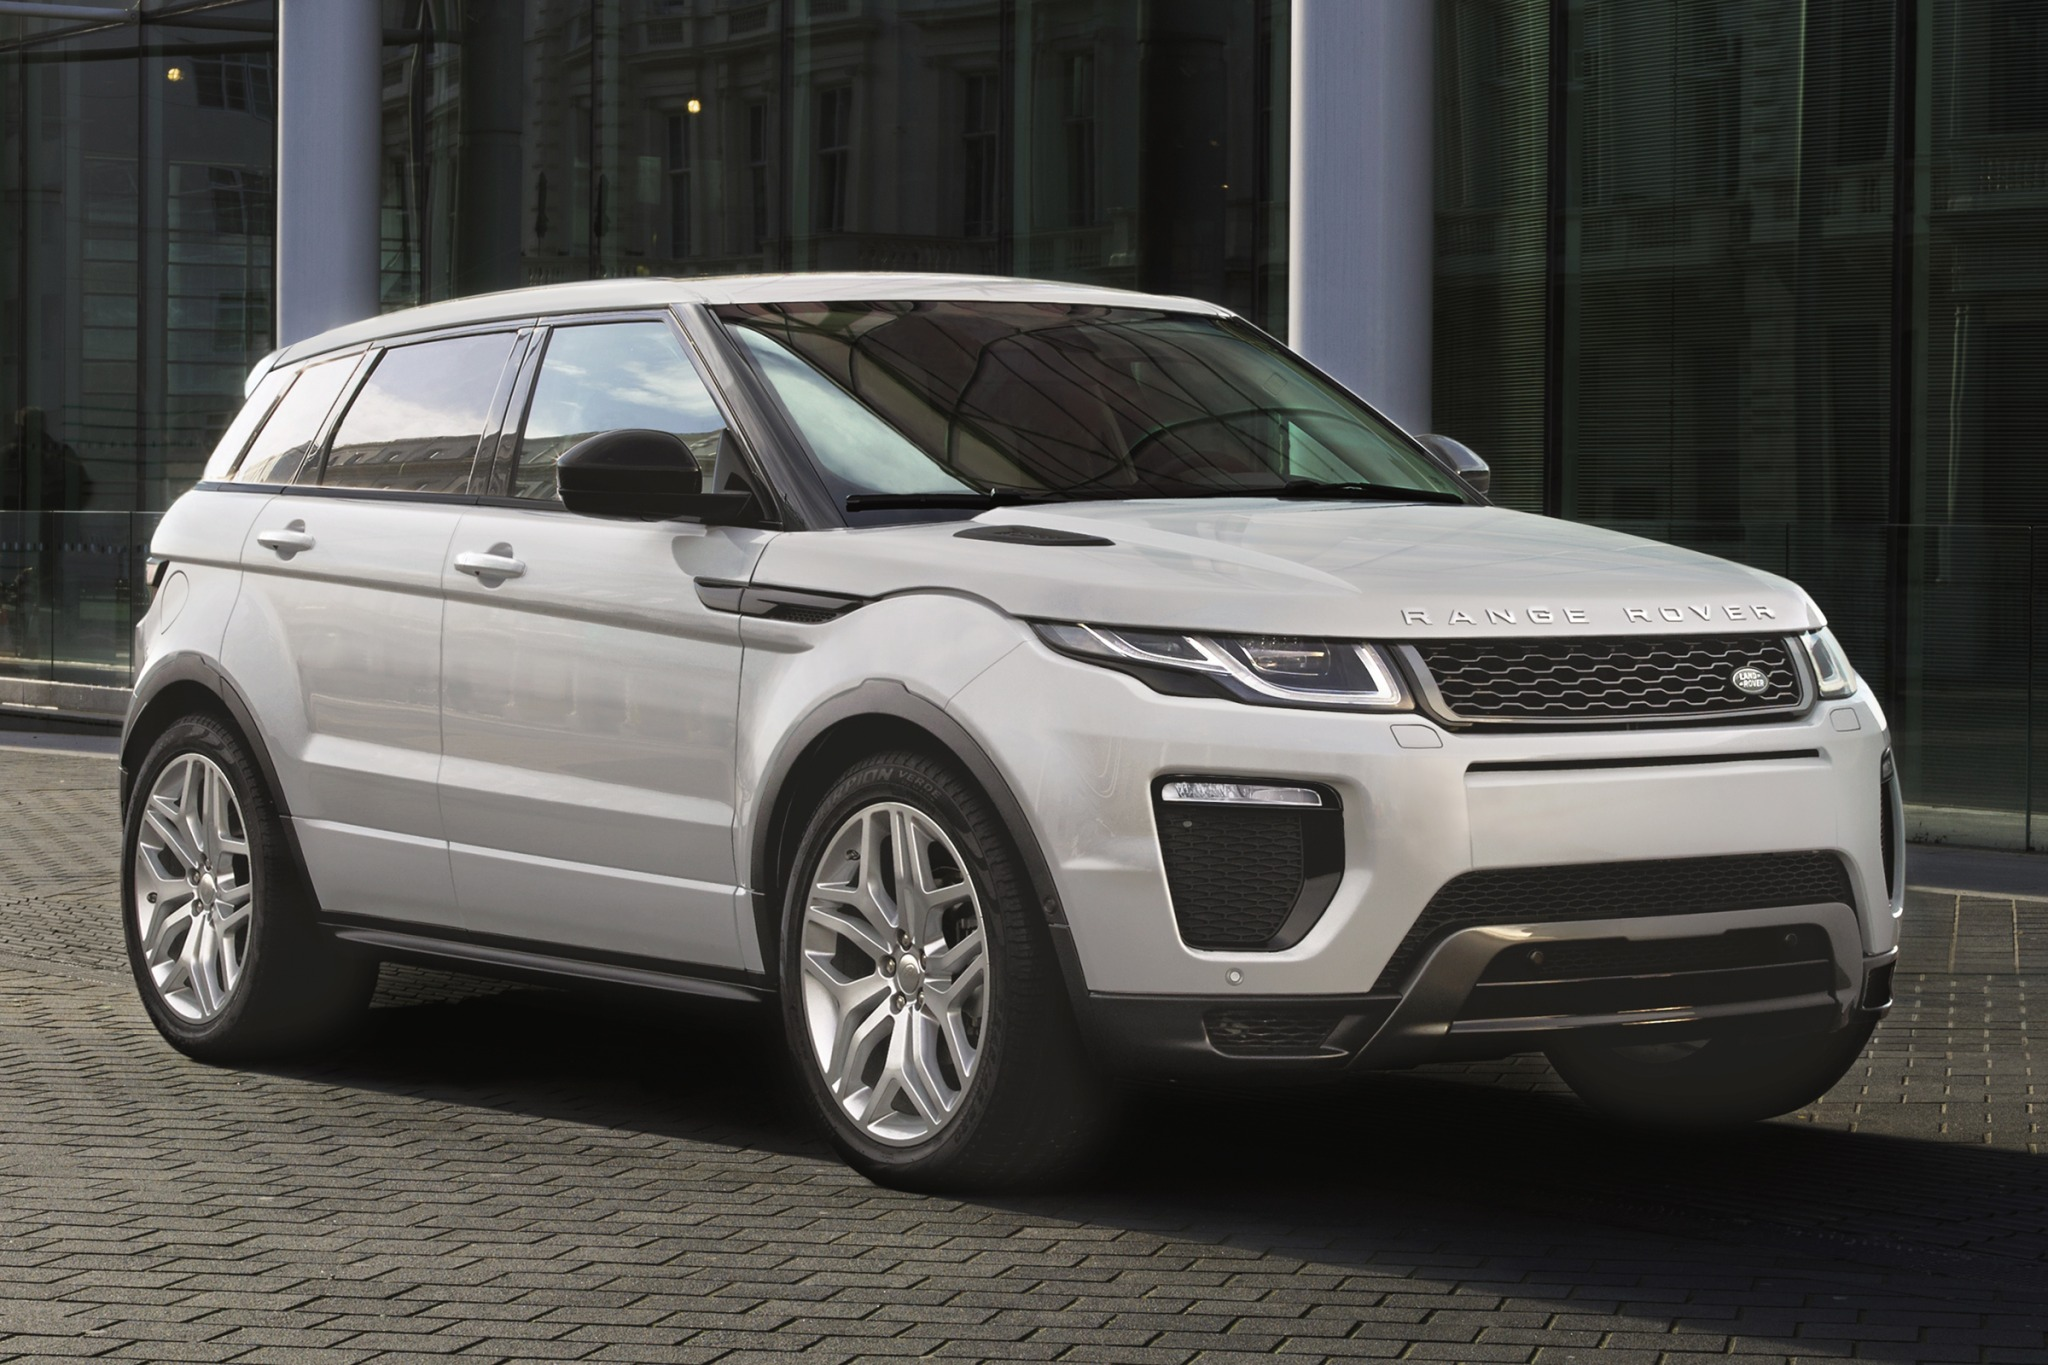 2016 land rover range rover evoque 4dr suv hse wdynamic package fq oem 1 2048